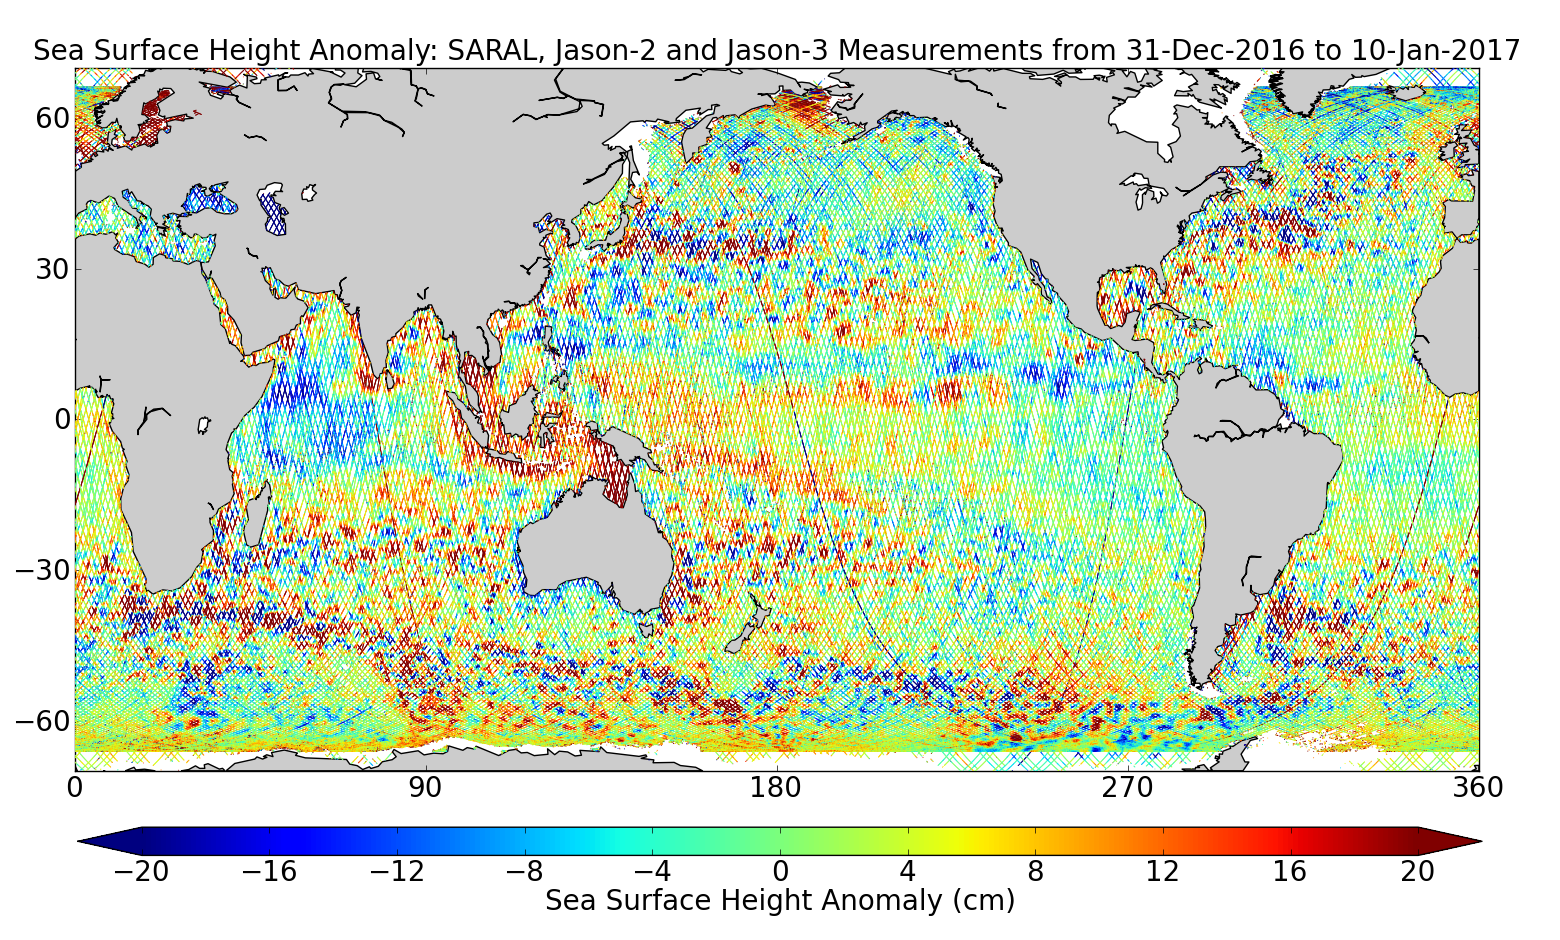 Sea Surface Height Anomaly: SARAL, Jason-2 and Jason-3 Measurements from 31-Dec-2016 to 10-Jan-2017